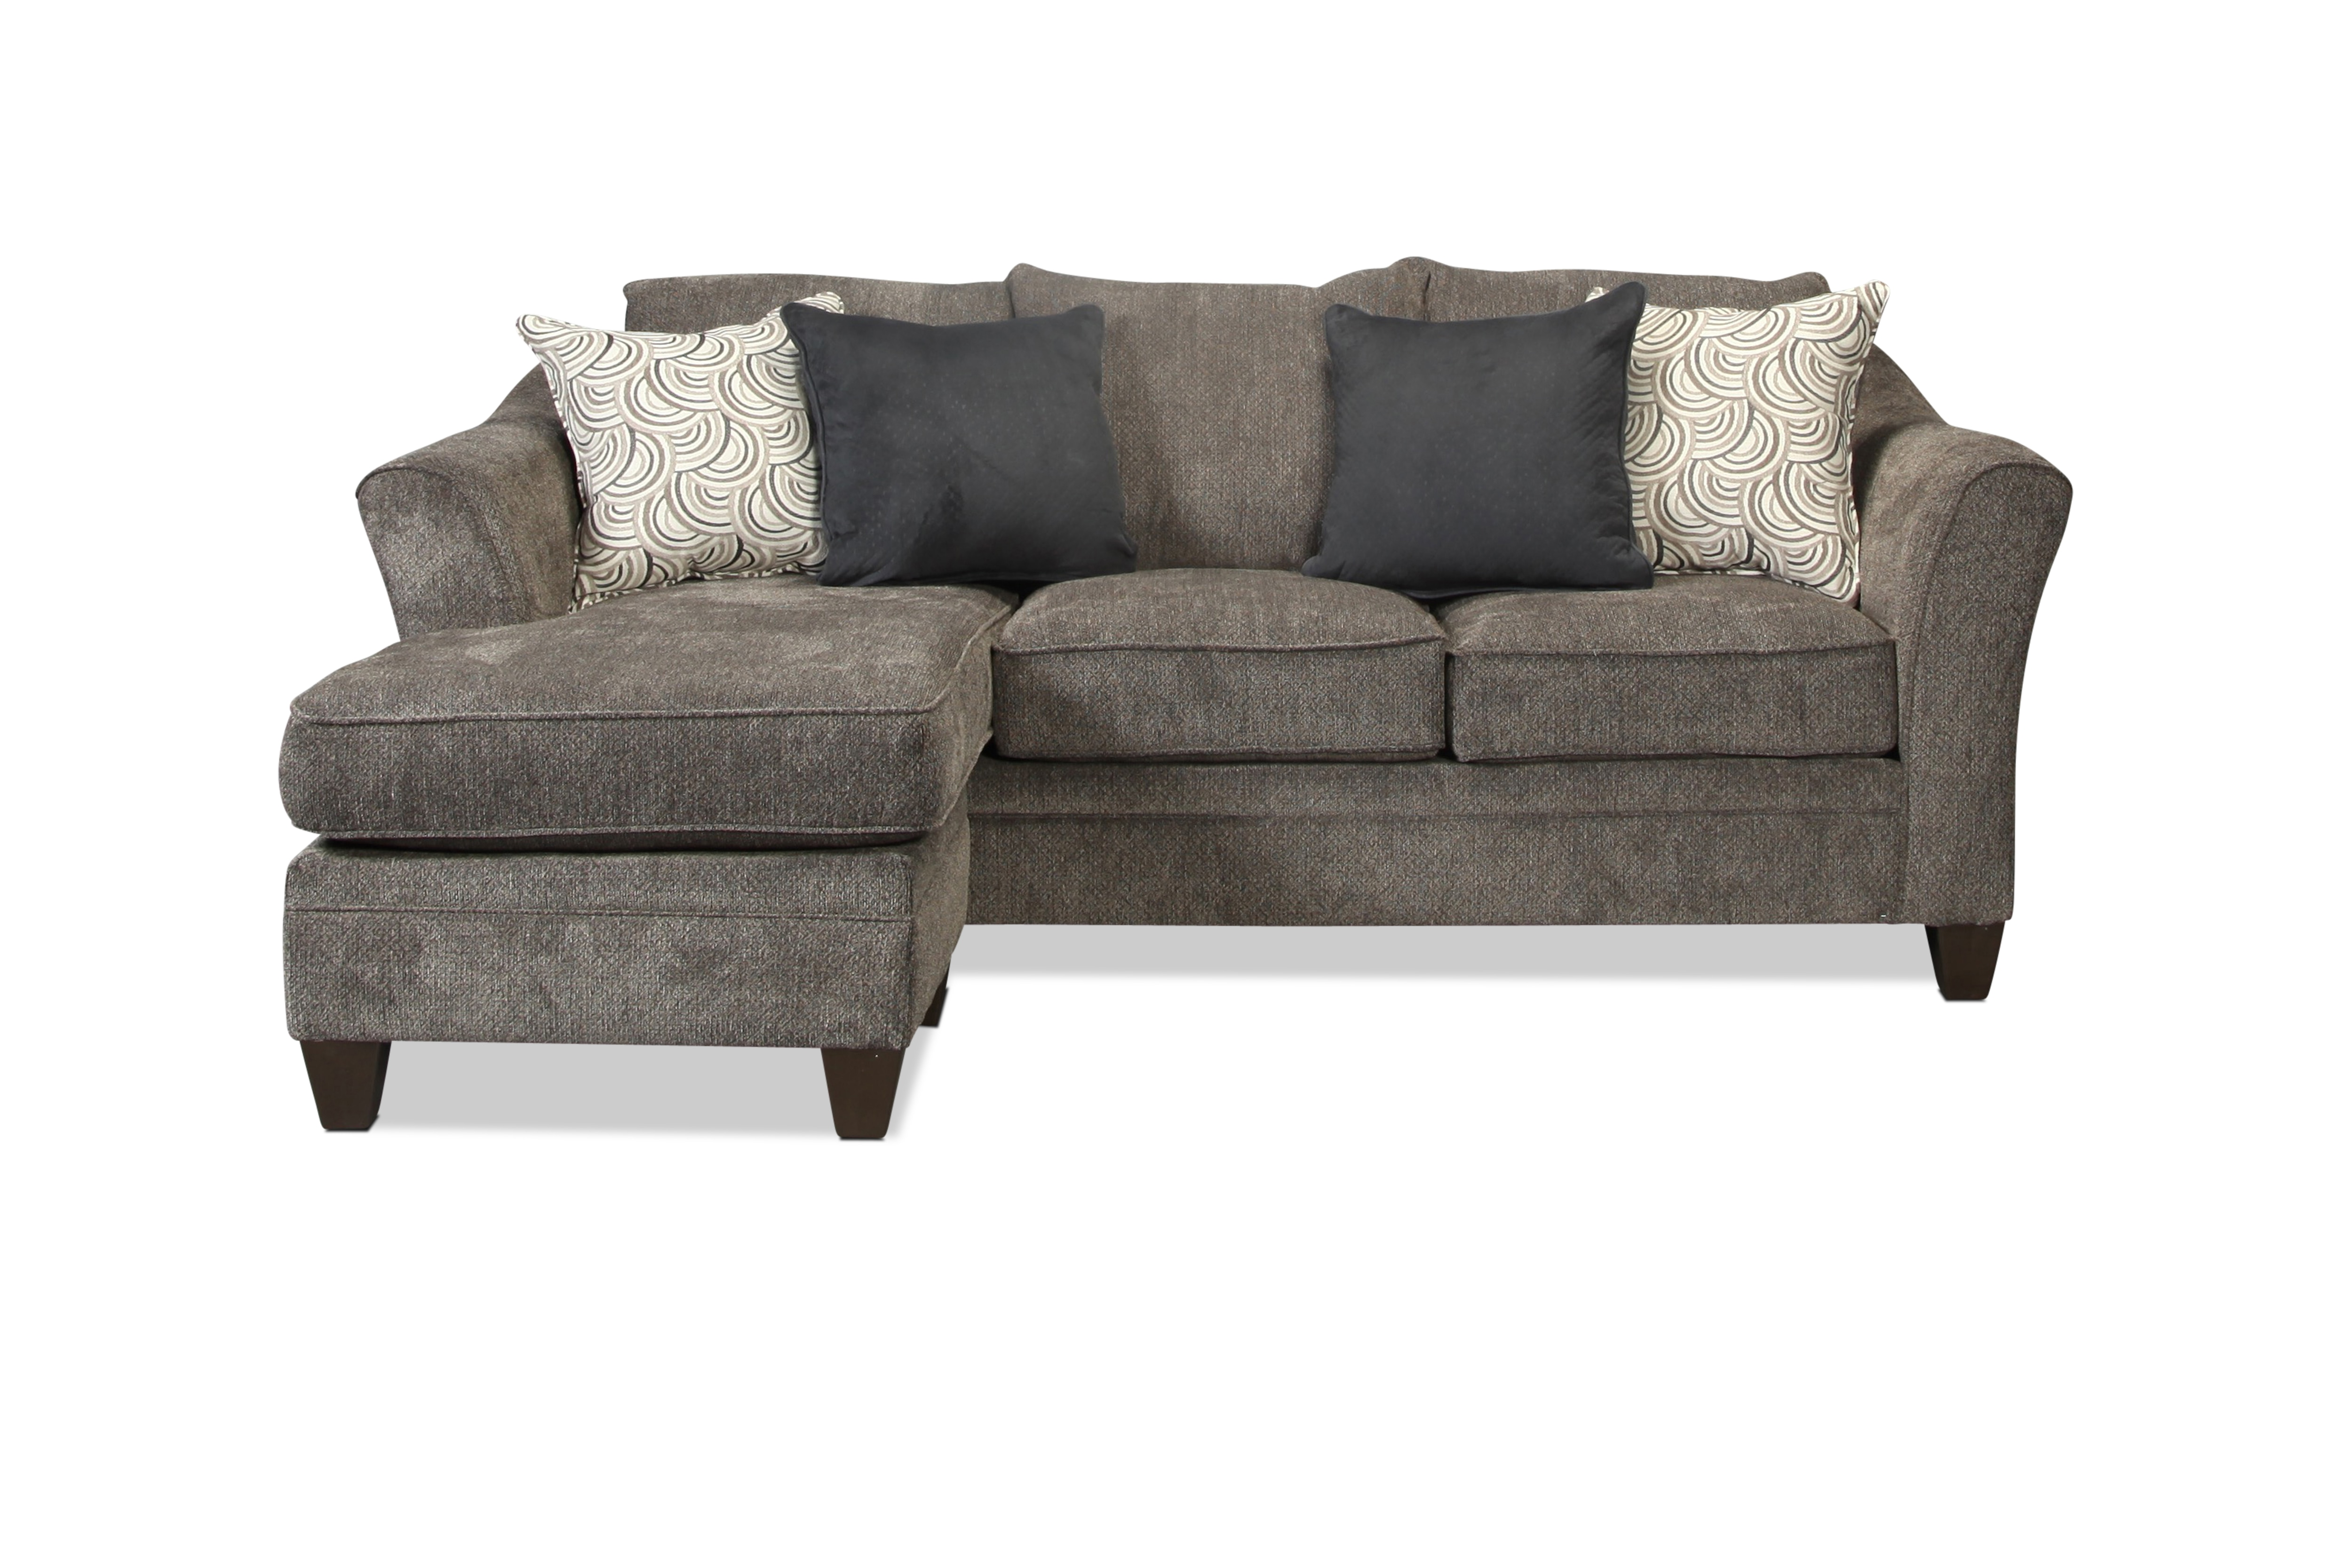 Desmond sofa chaise pewter levin furniture for Apartment sofa chaise